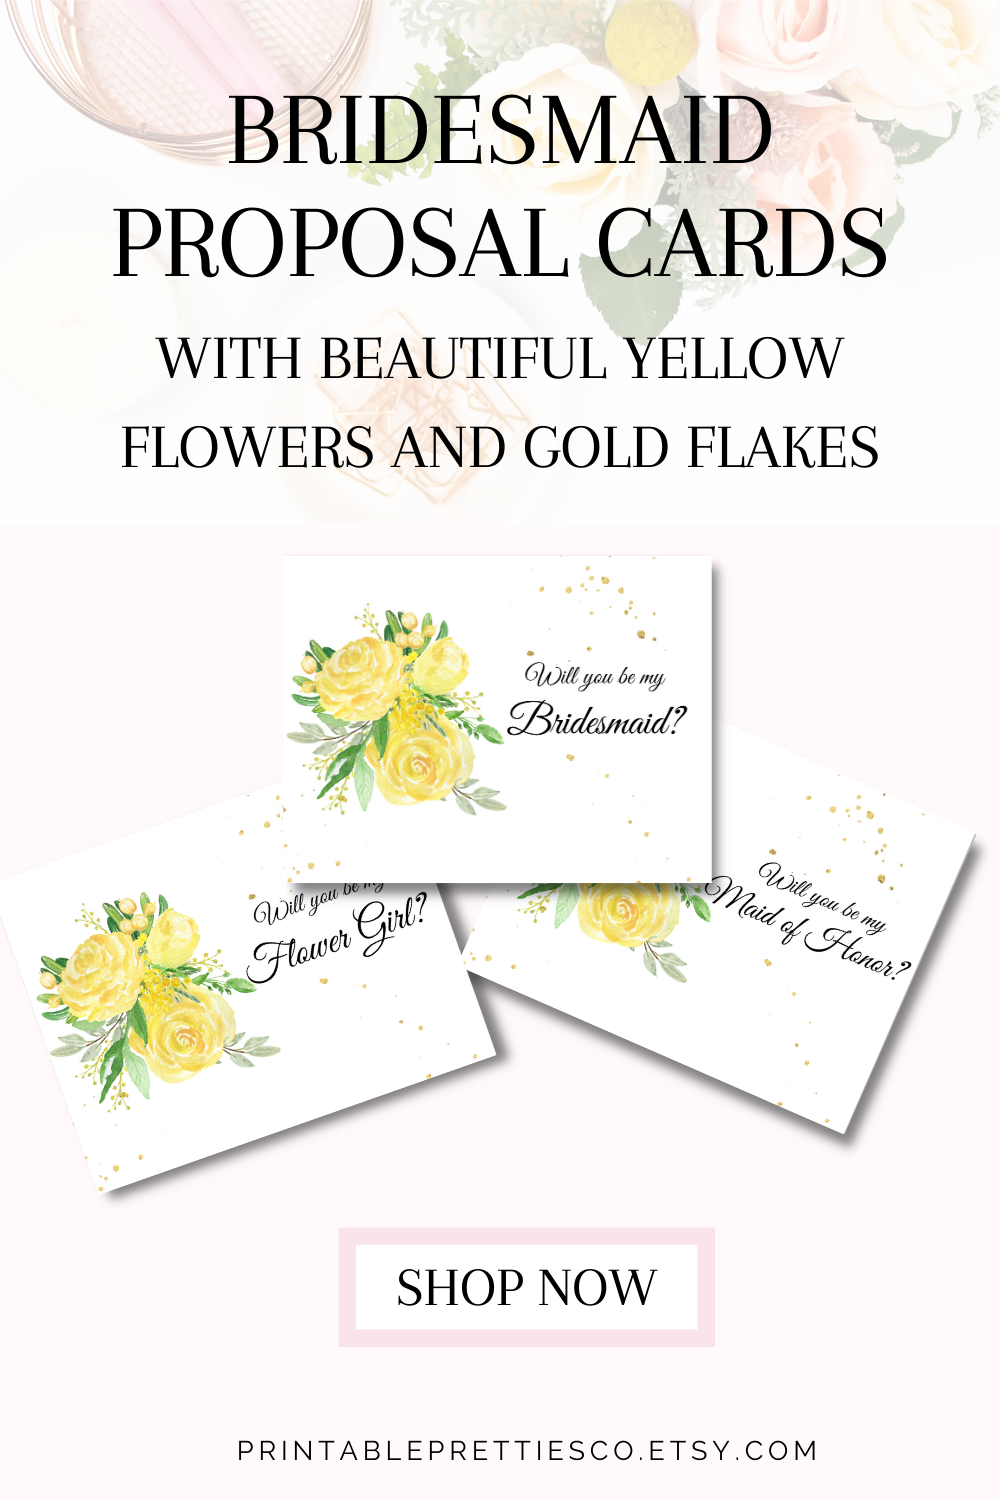 Bridesmaid Proposal Card With Beautiful Yellow Flowers And Elegant Gold Flakes Bridesmaid Proposal Bridesmaid Proposal Cards Bridesmaid Gifts Unique